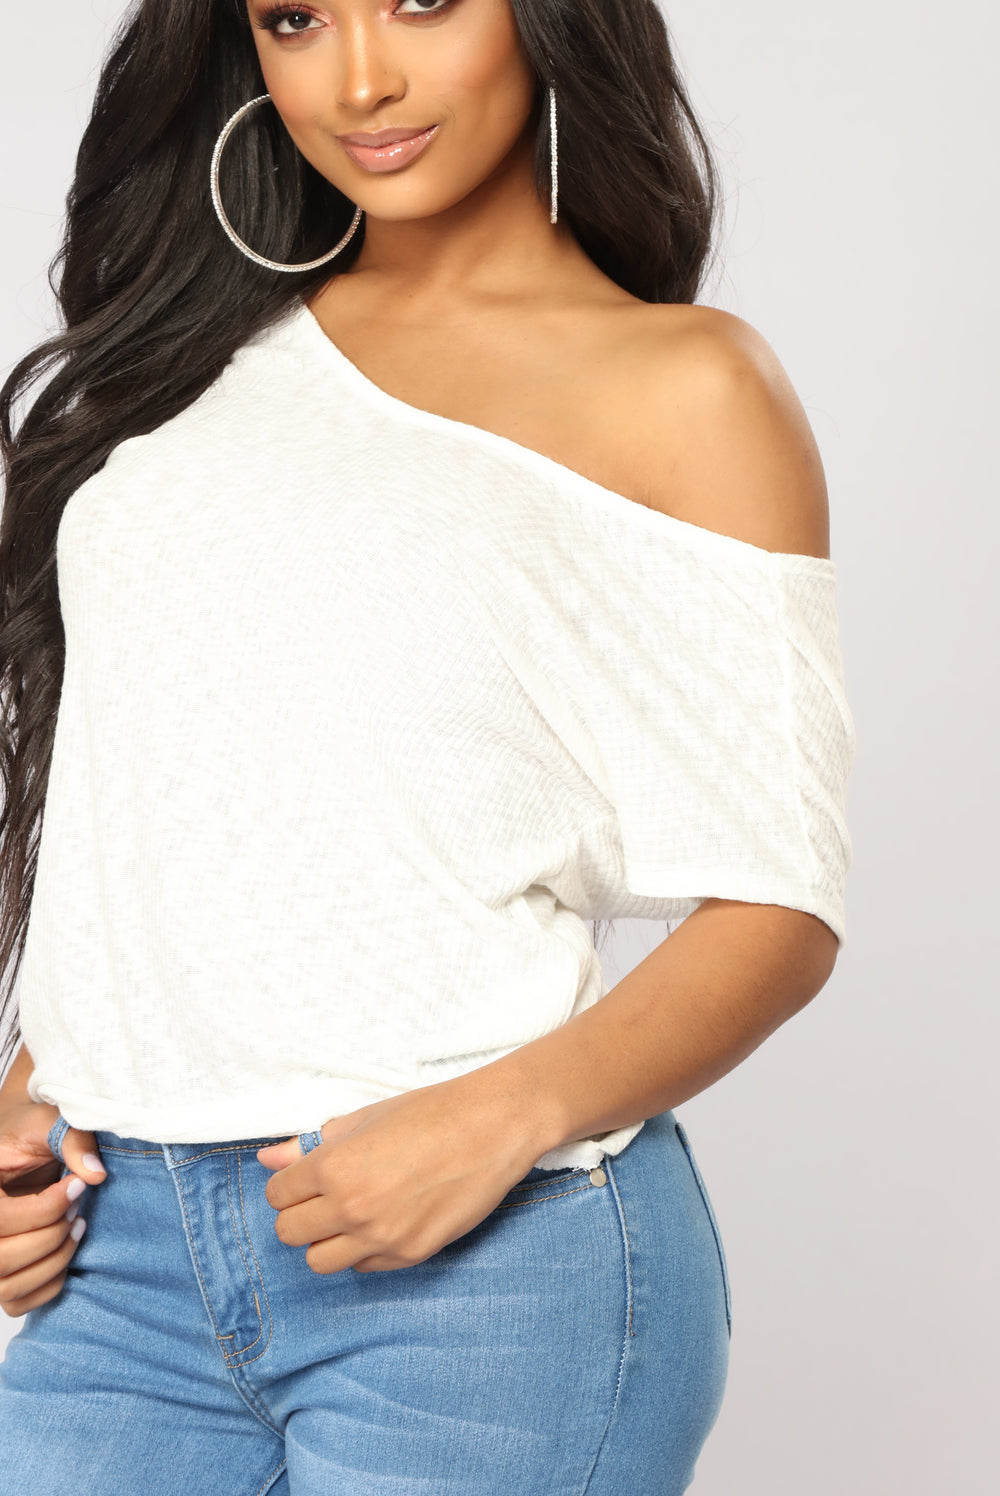 Do Not Wait For Me Top - Ivory